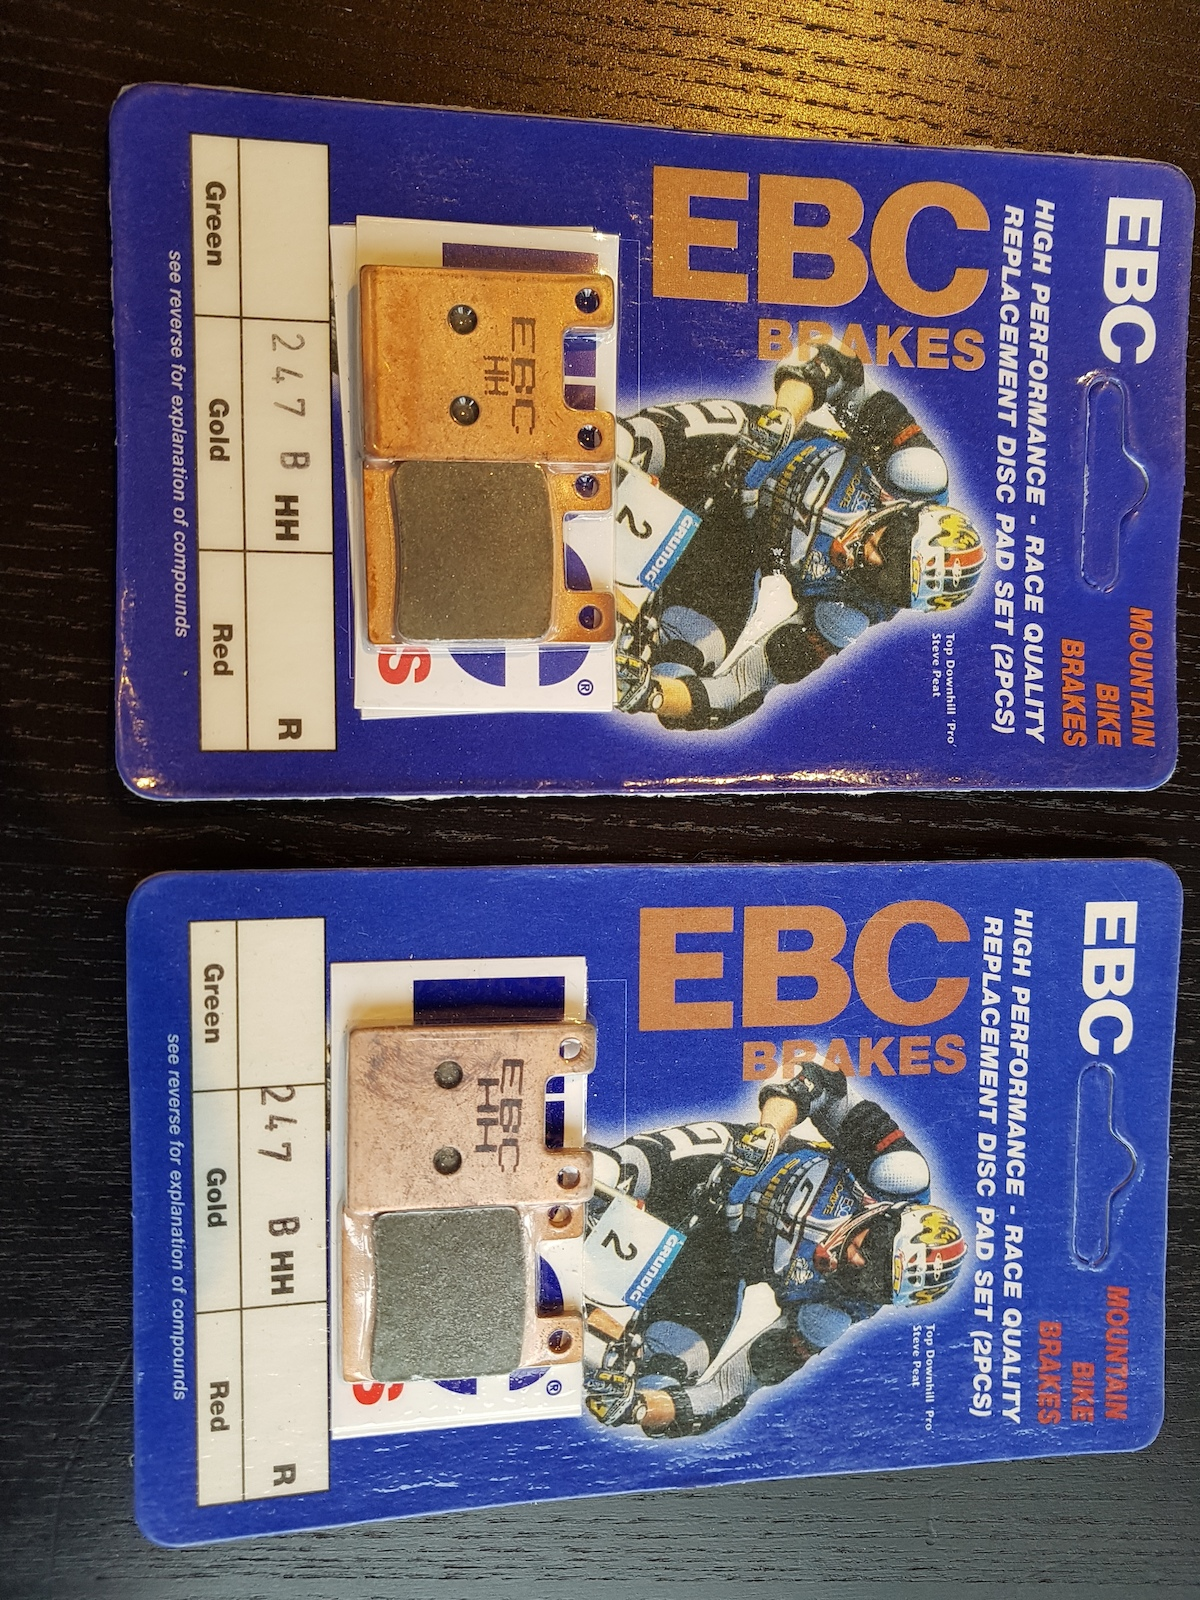 0 Hope EBC Gold brake pads (NEW!)